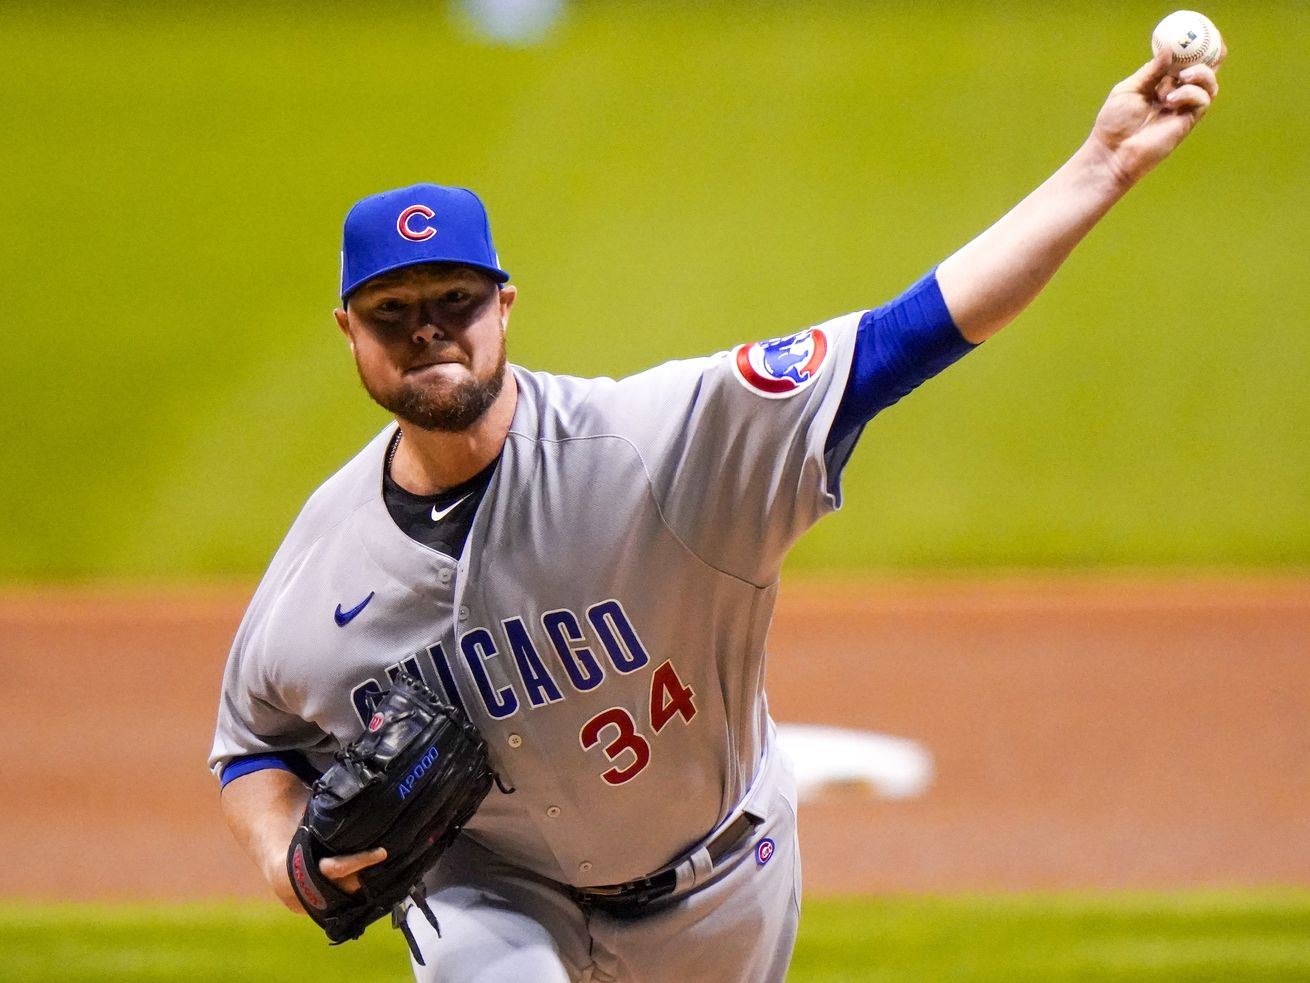 If the Cubs plan to have success in October, they need this Jon Lester